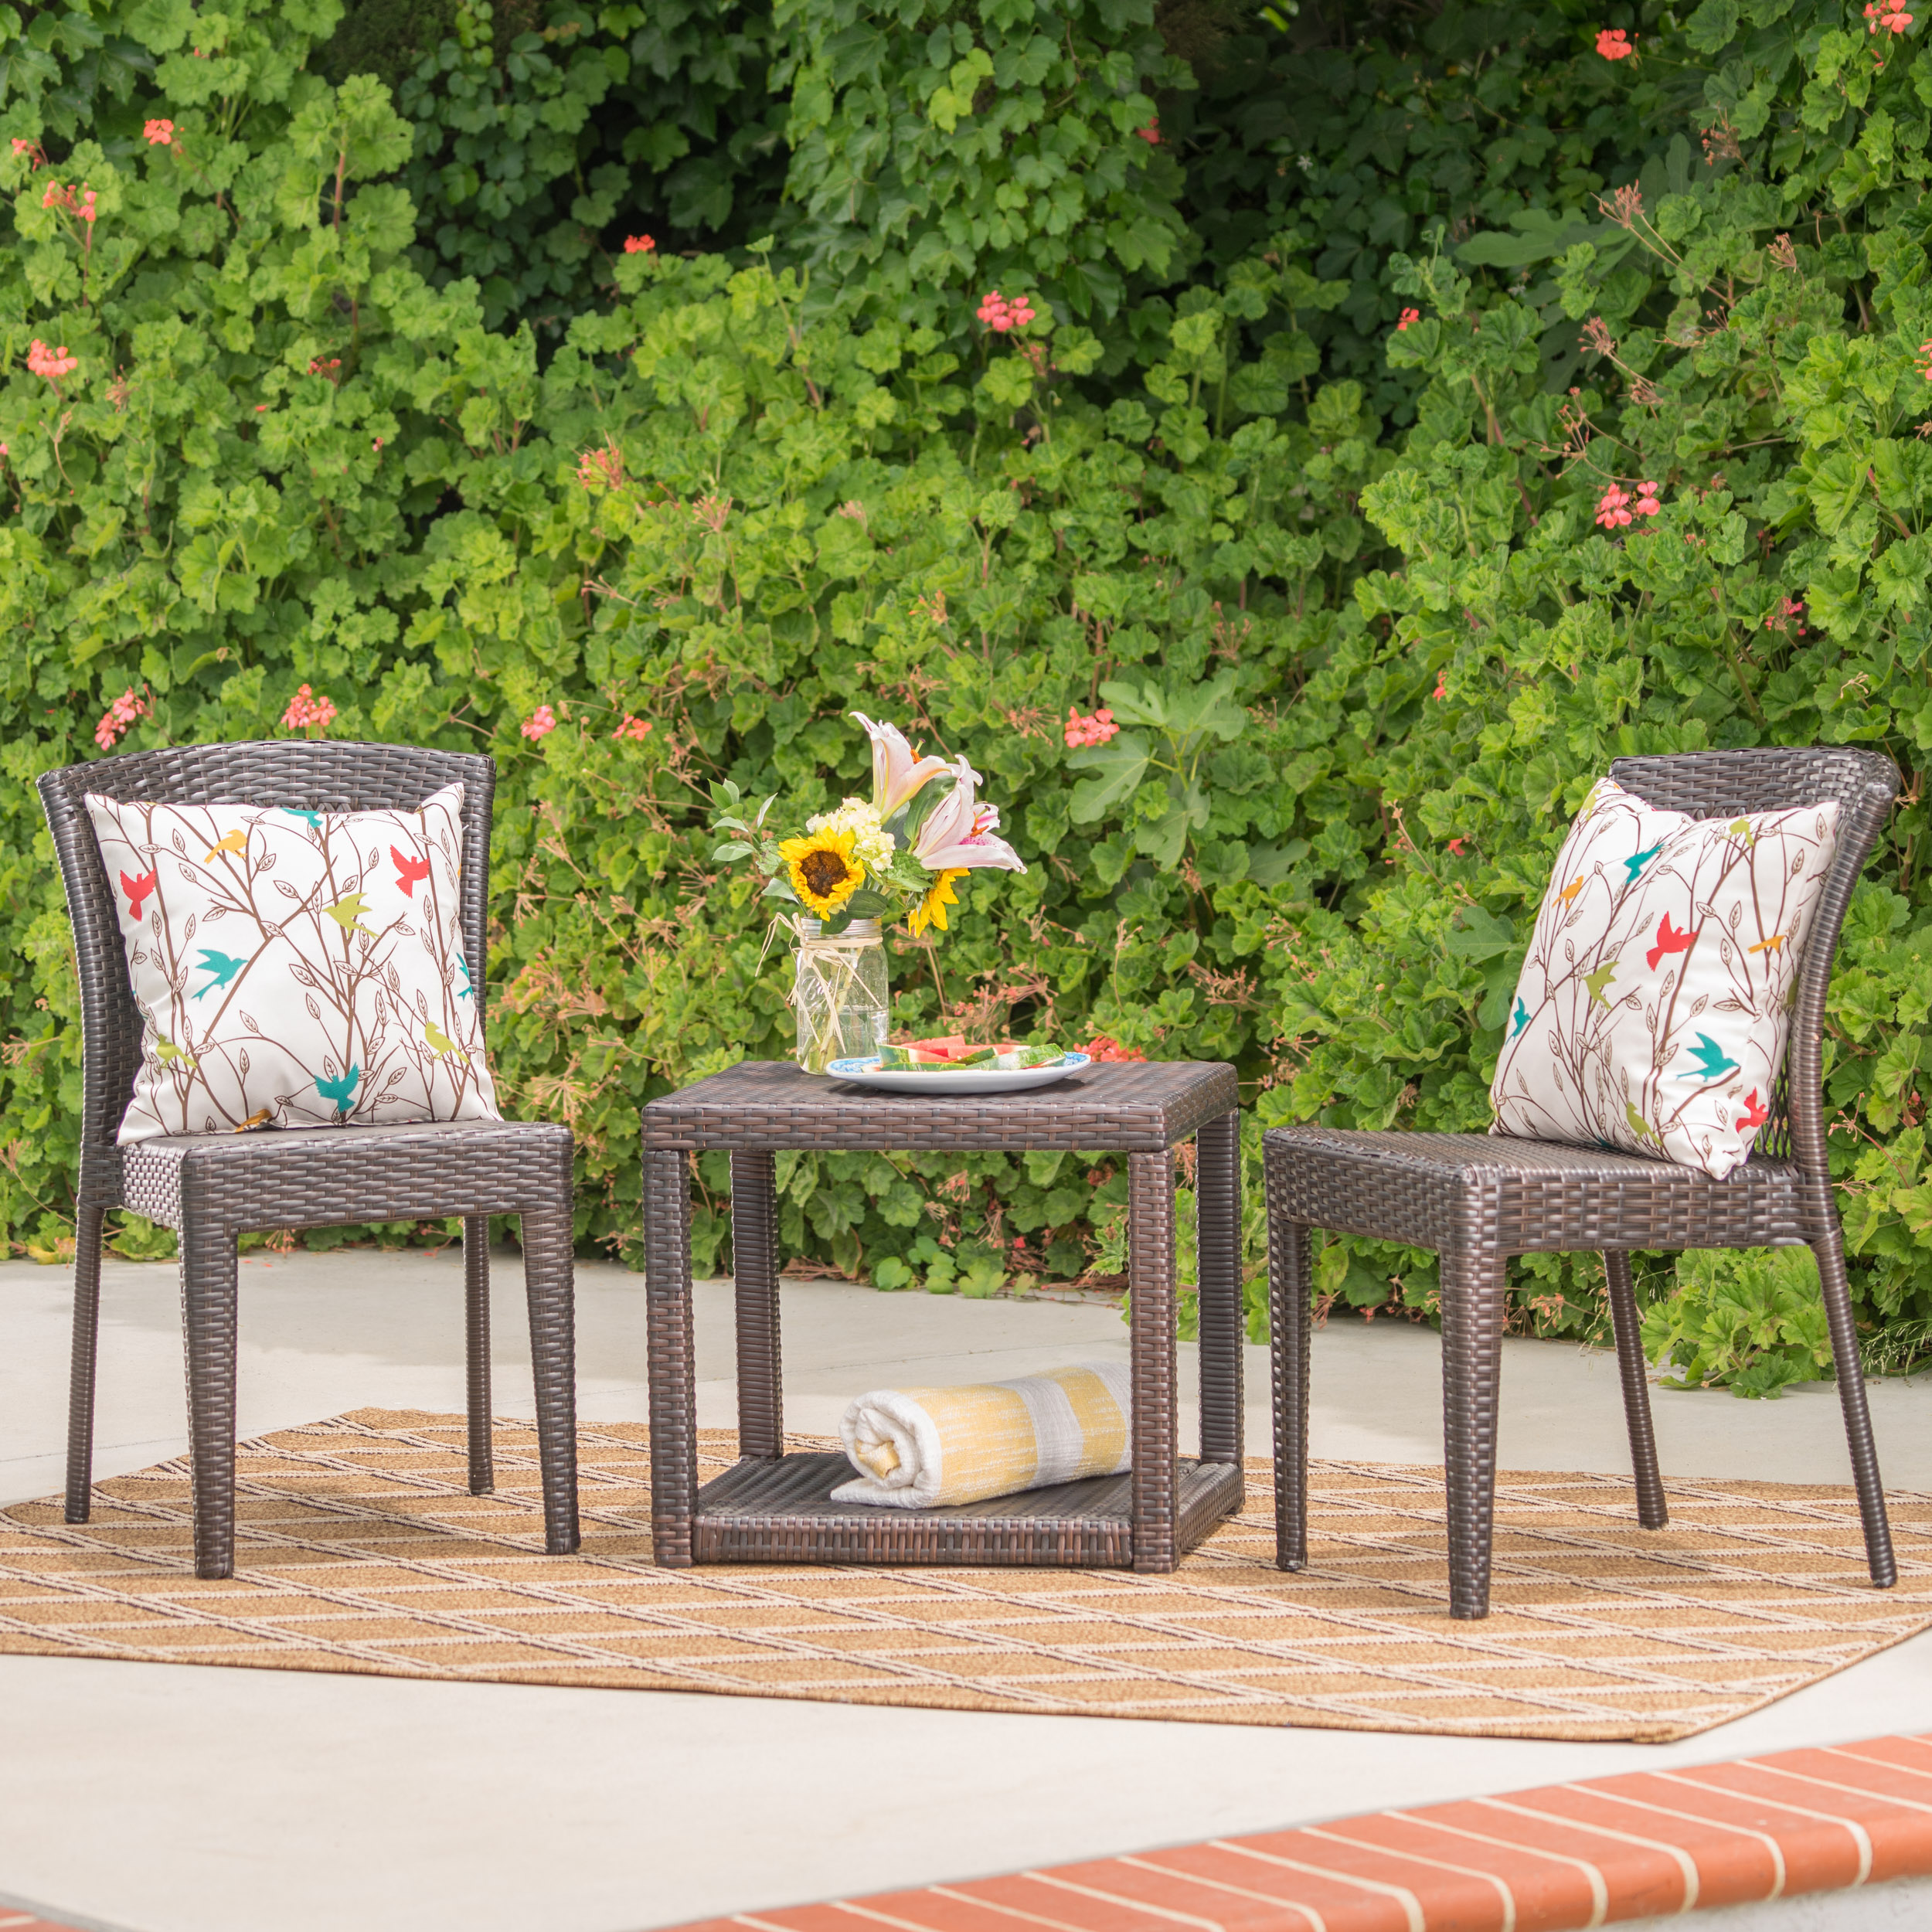 Ava Outdoor 3 Piece Wicker Stacking Chair Chat Set, Multibrown